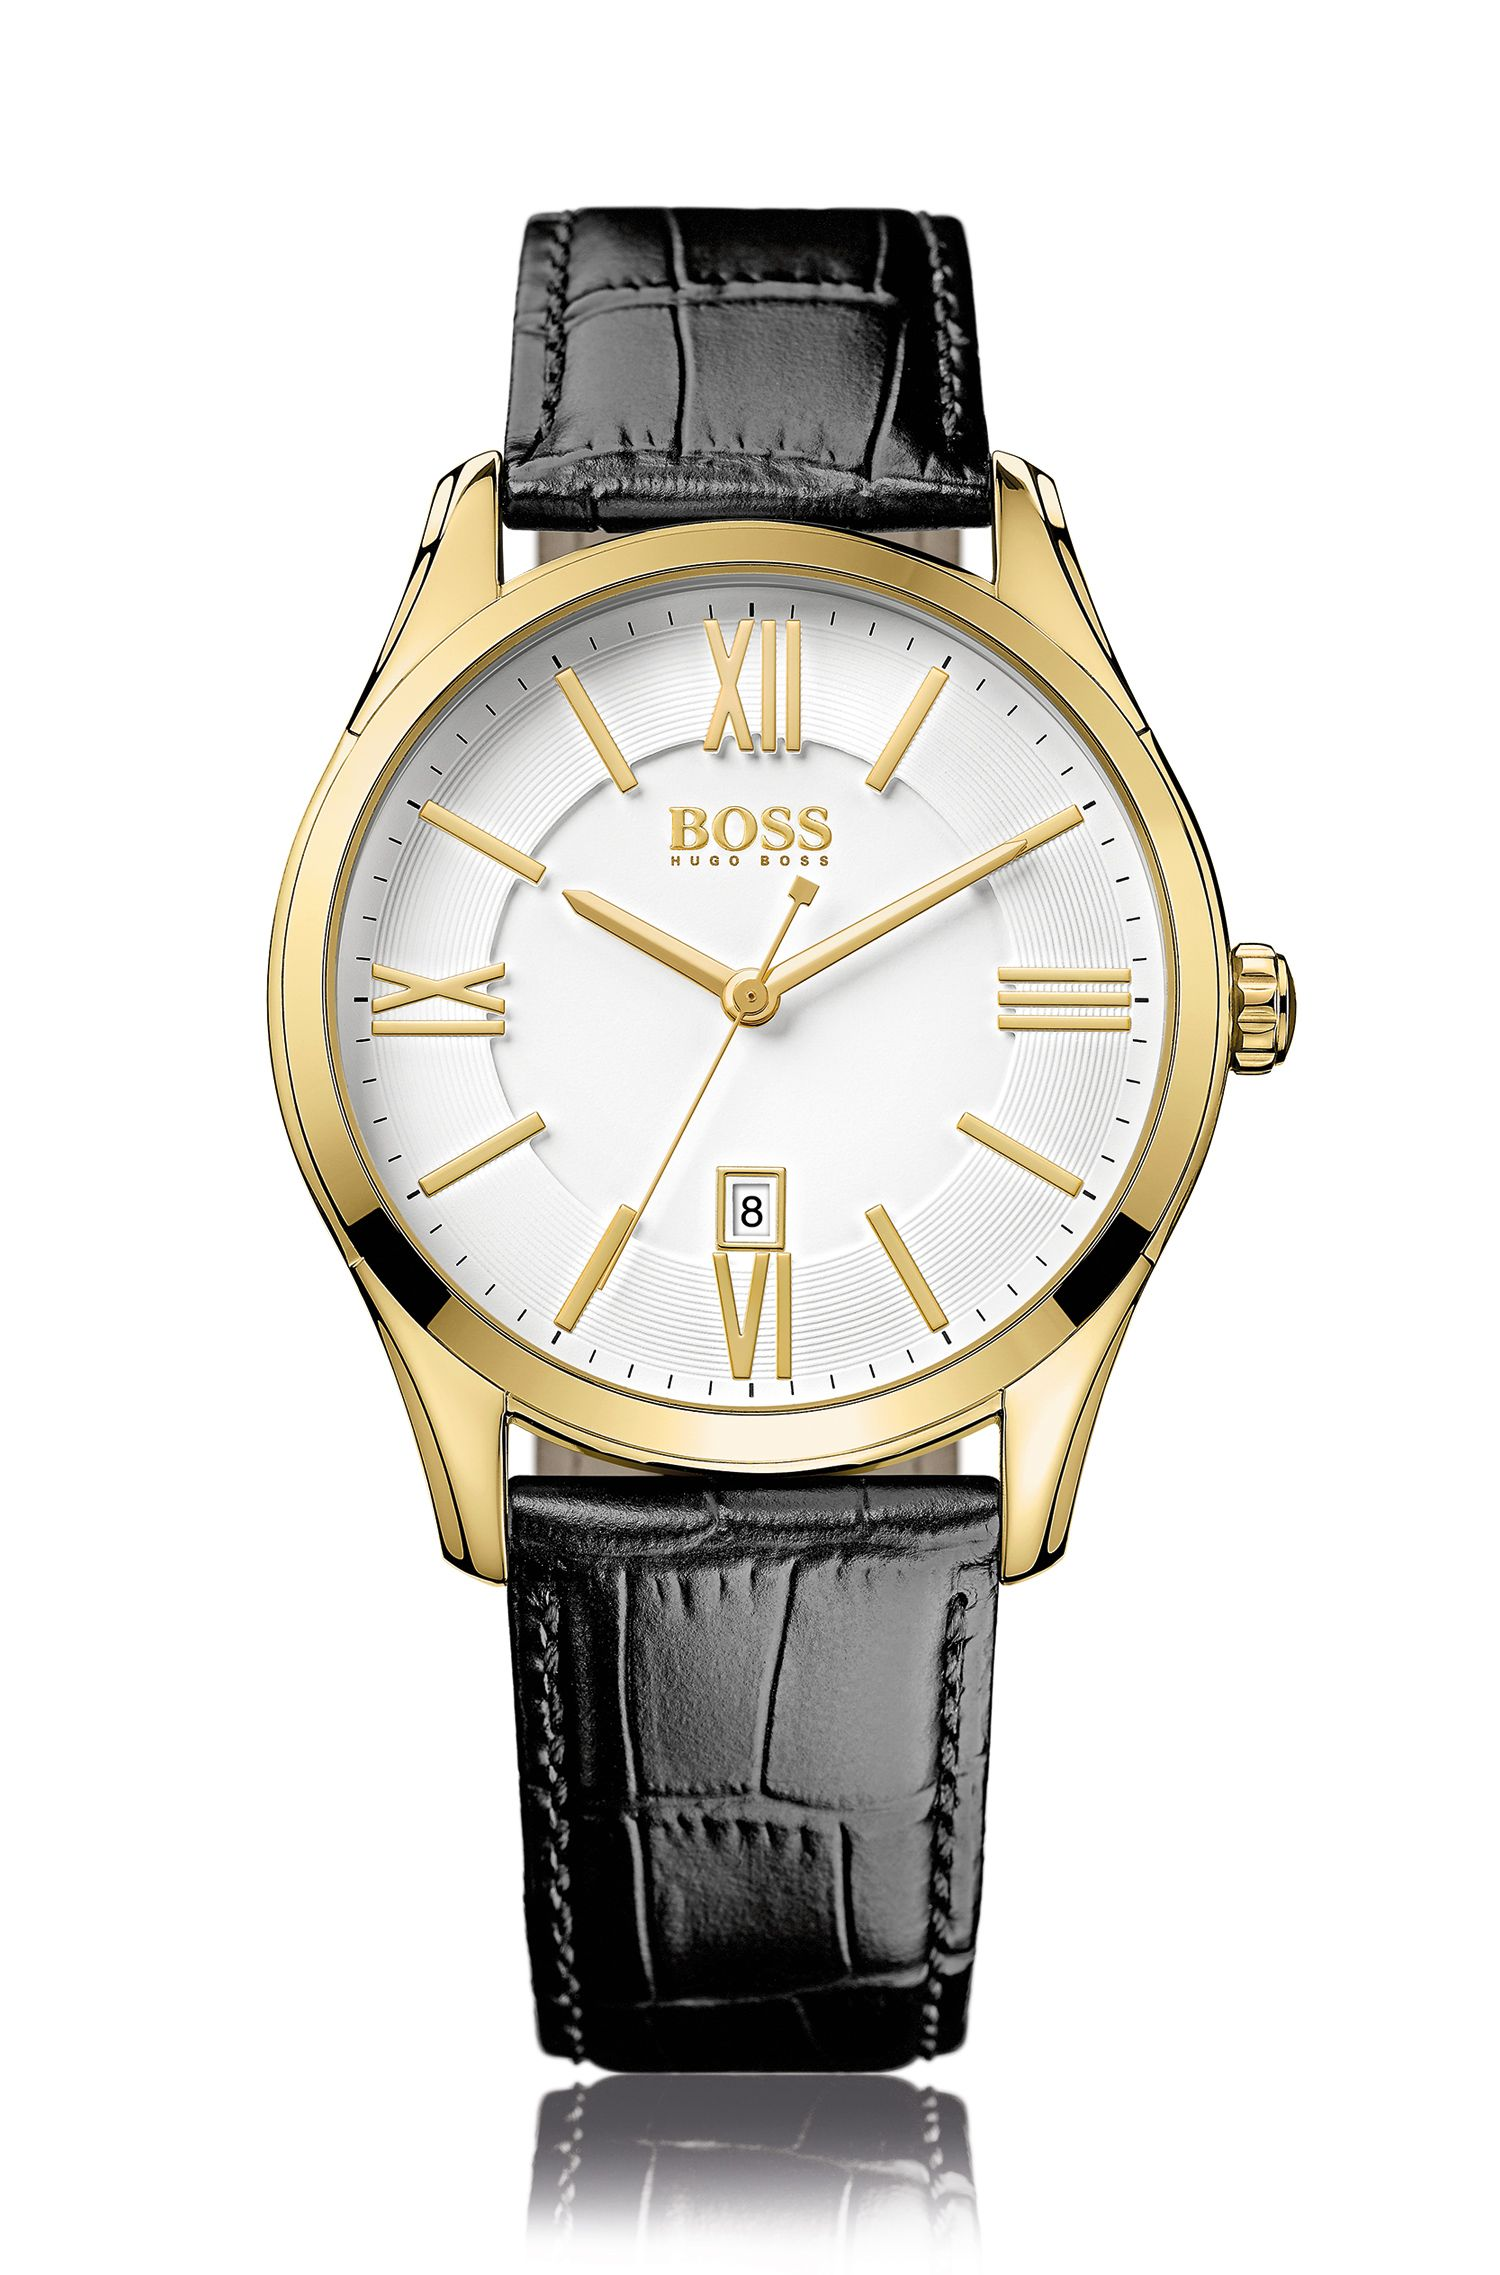 Watch with a quartz movement and a gold-plated stainless steel casing: 'HB6038'